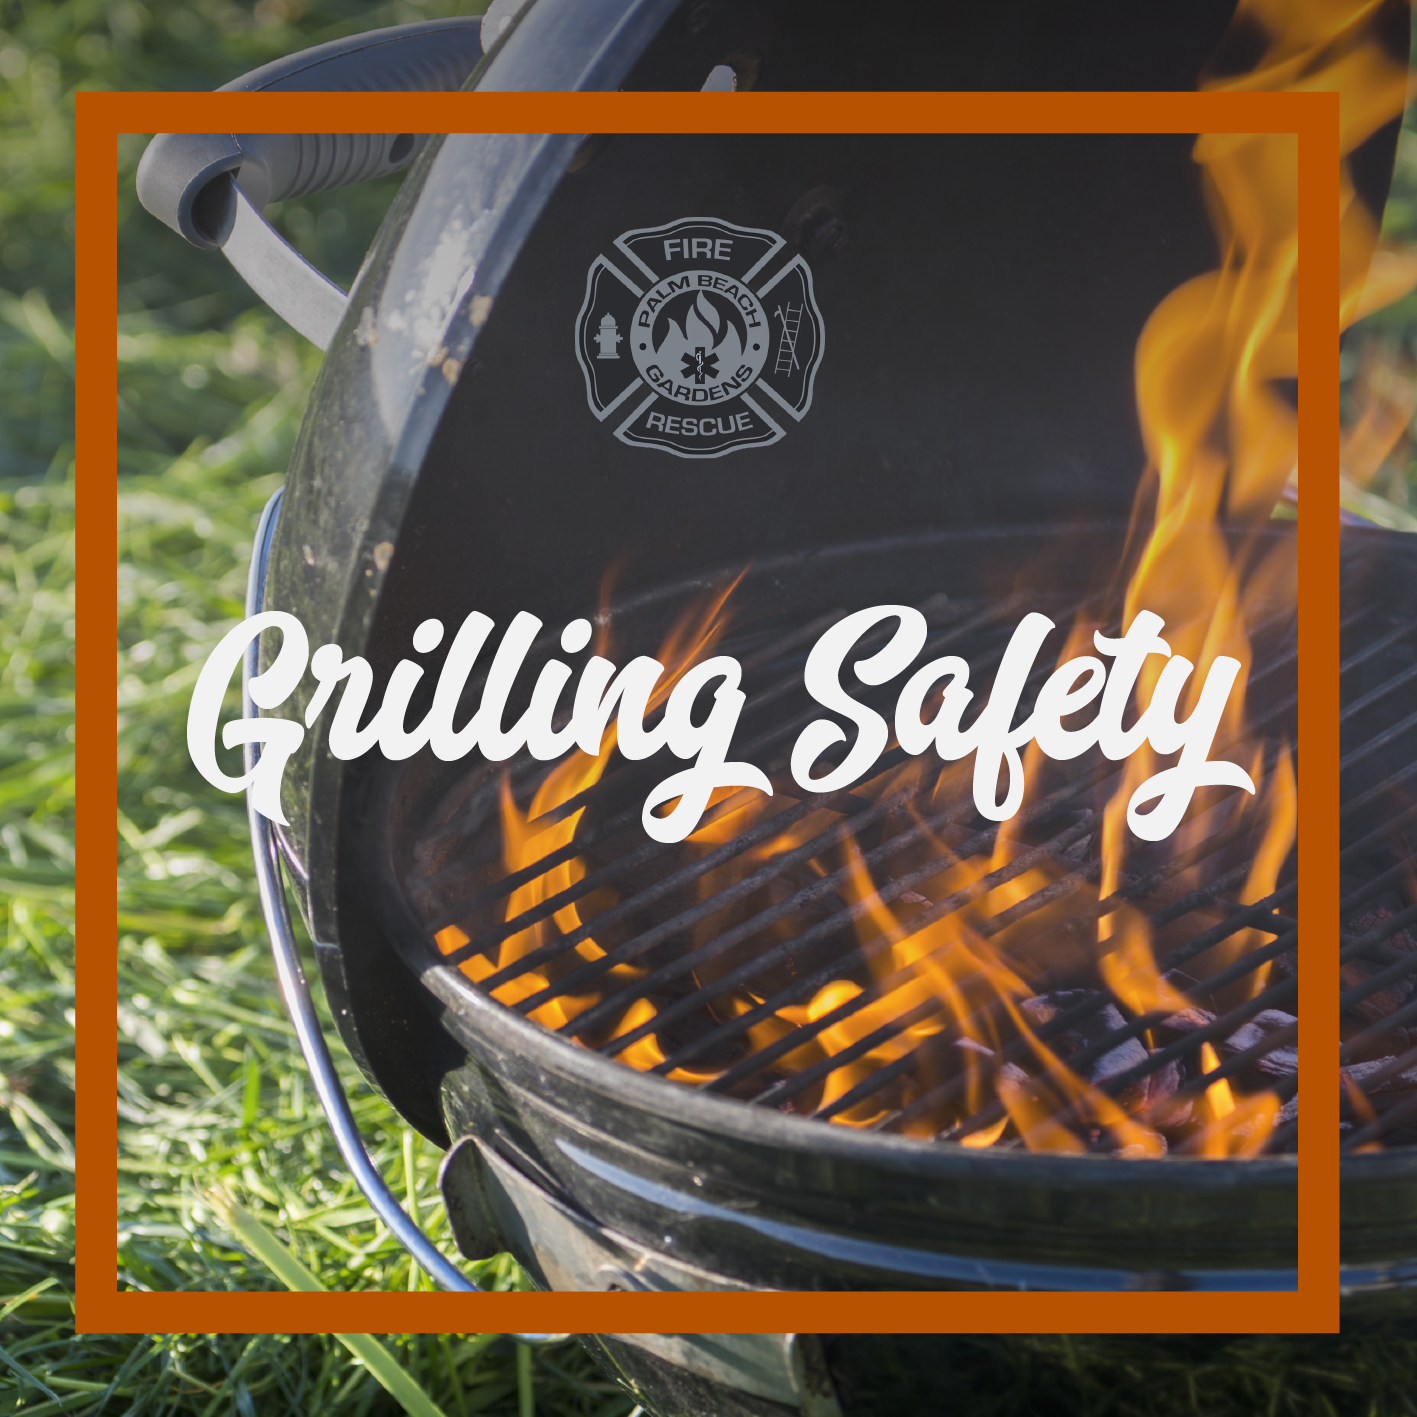 Palm Beach Gardens Fire Rescue. Grilling Safety. Flames on barbecue grill.